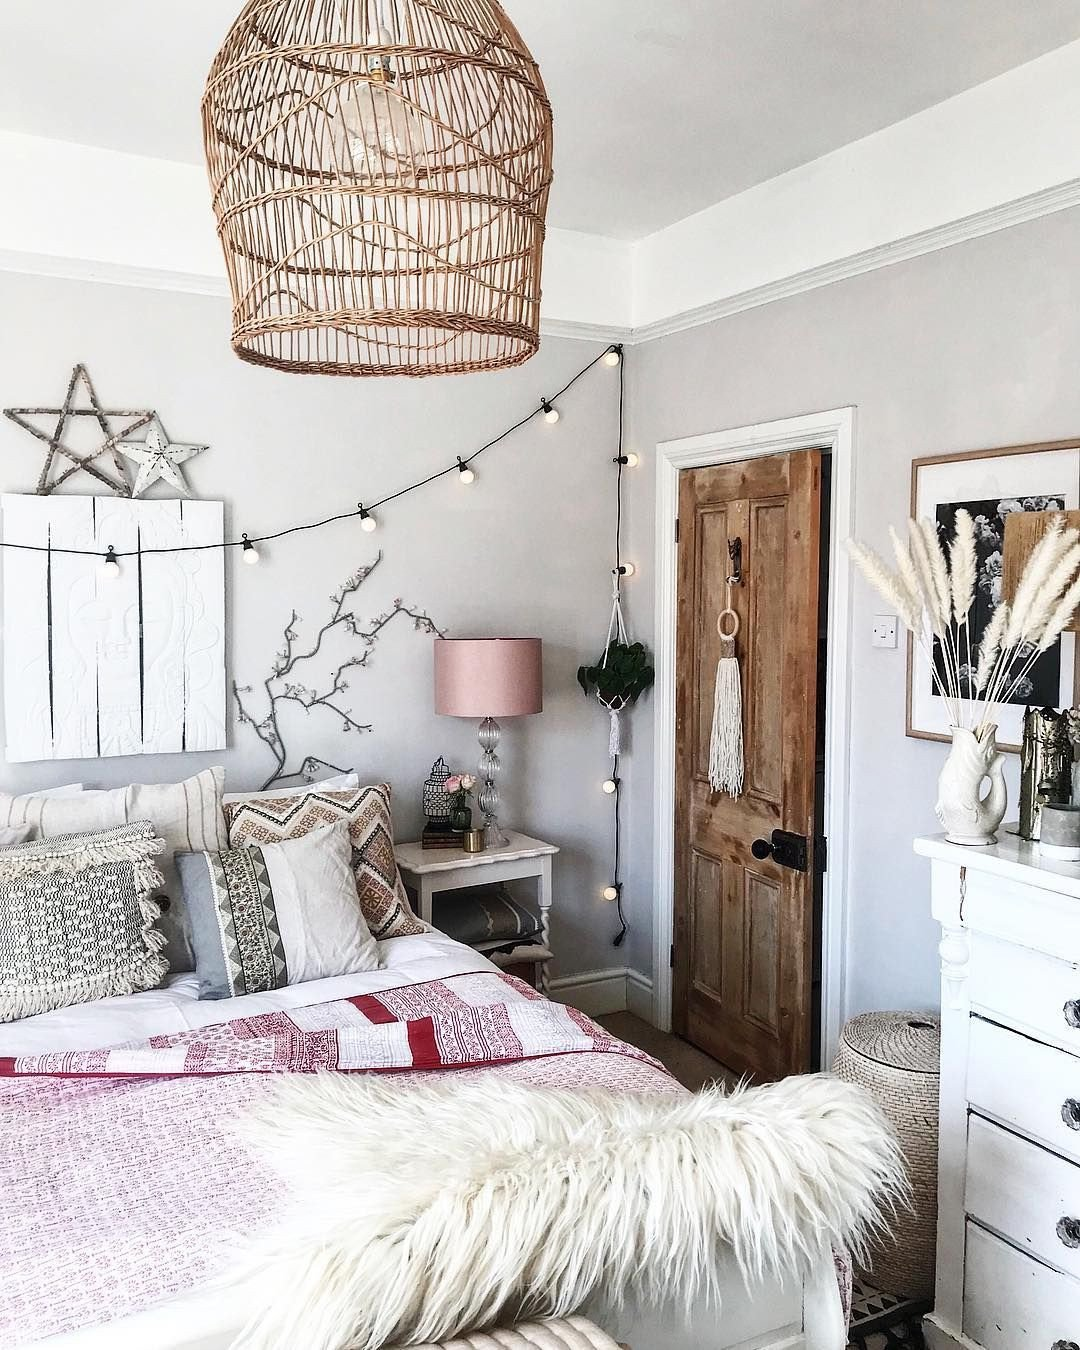 Cute Rugs for Bedroom Awesome A Calm and Inspiring Bohemian Bedroom with Rattan Style